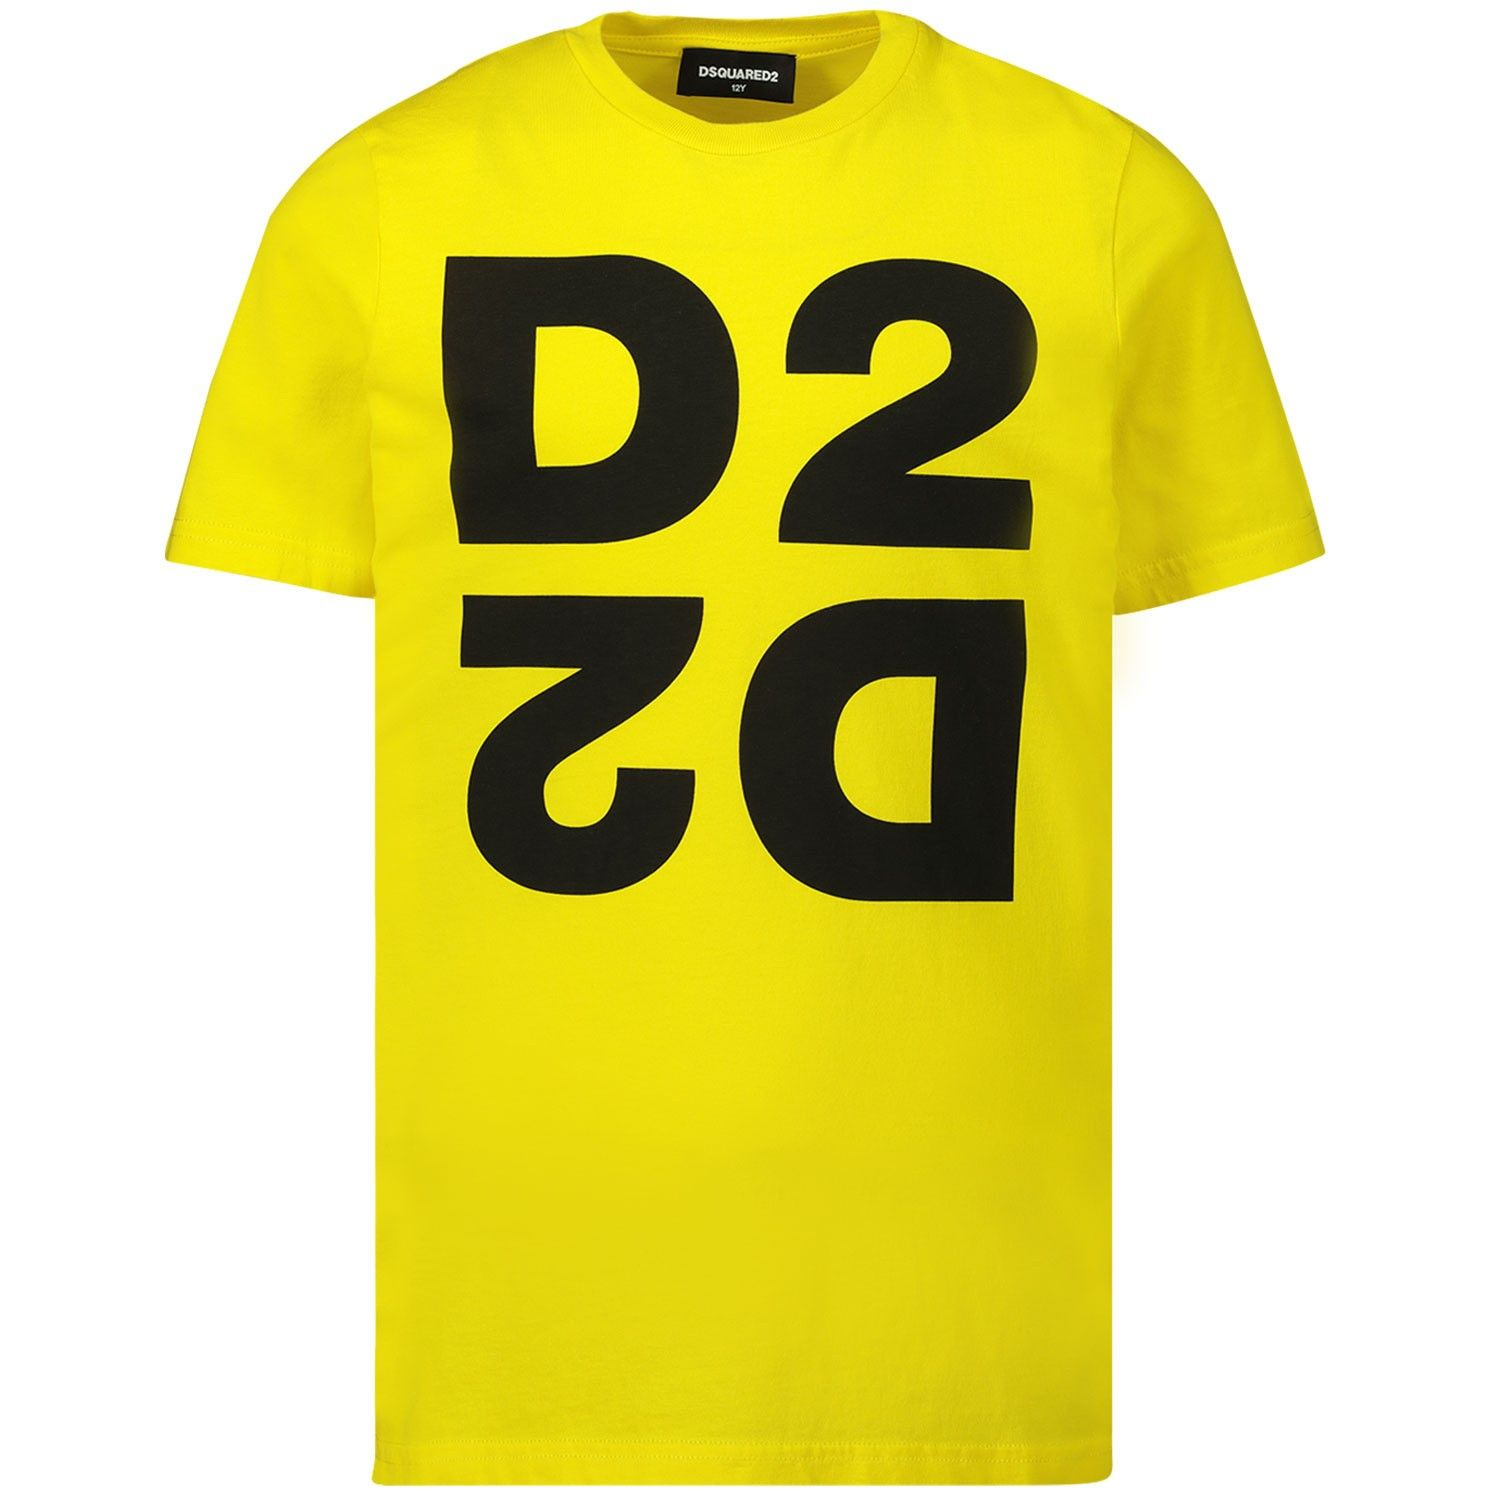 Picture of Dsquared2 DQ03WI kids t-shirt yellow